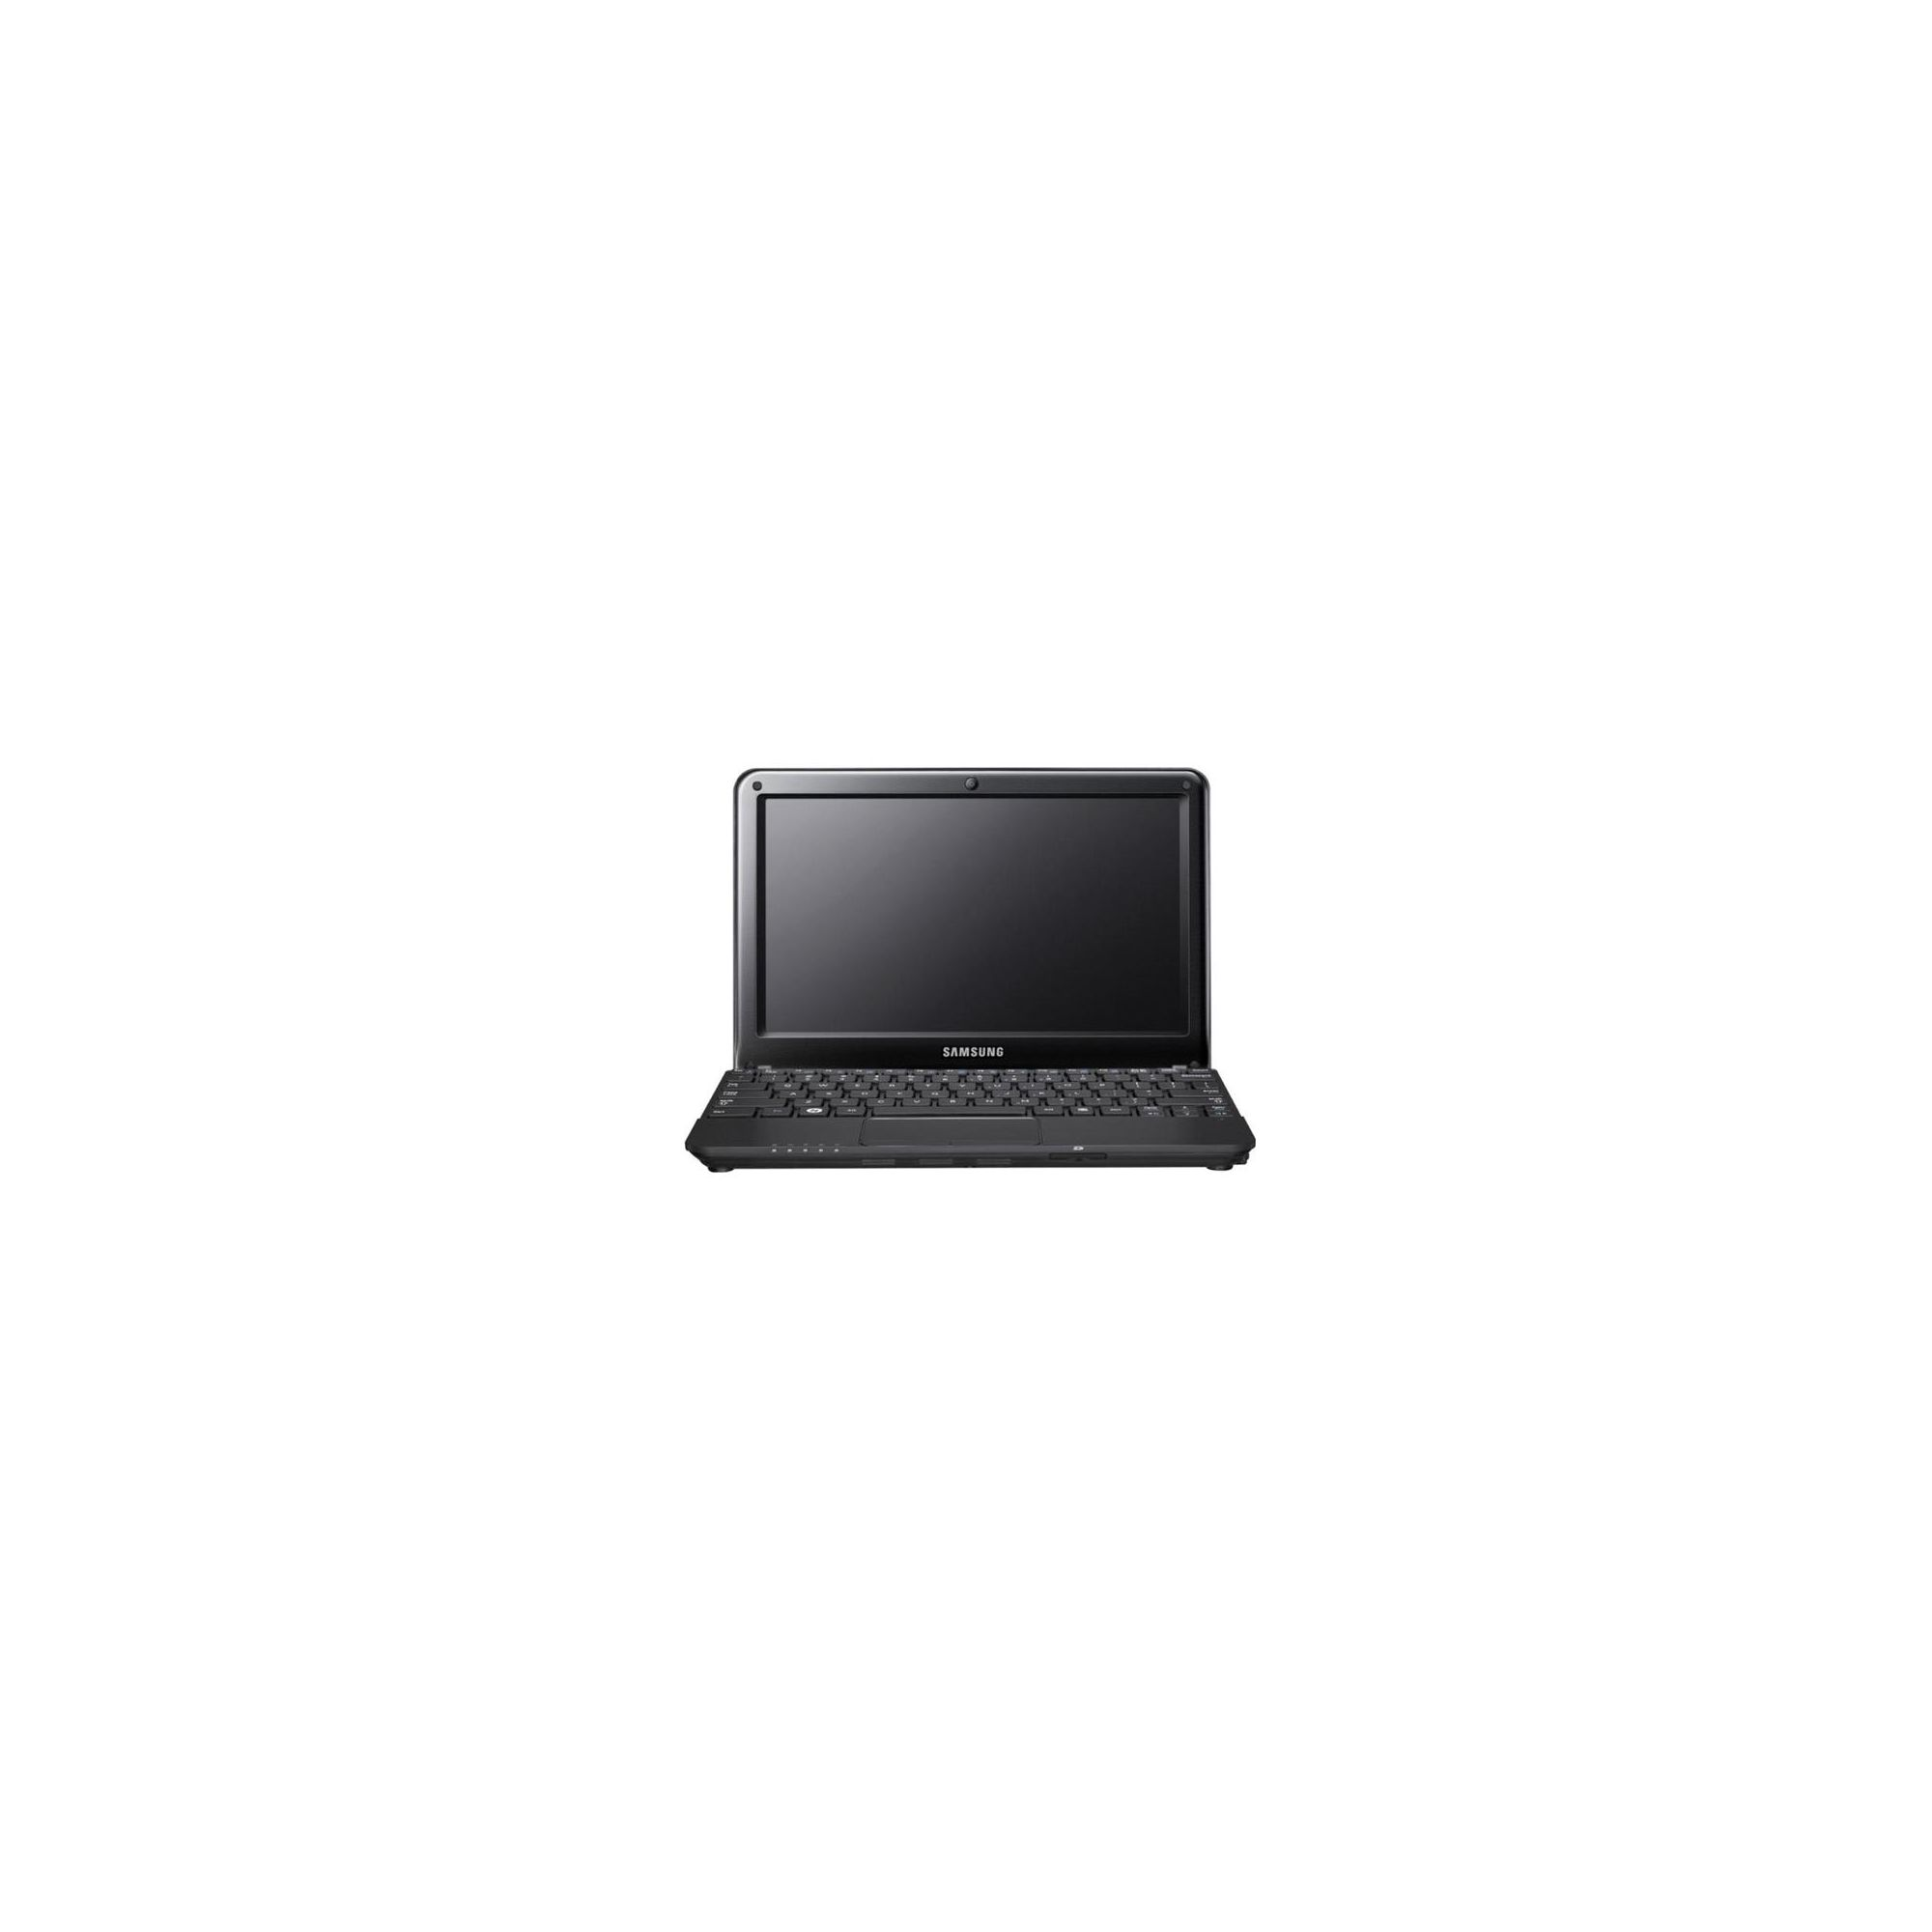 Samsung NC110 DC Netbook (Intel Atom, 1GB, 320GB, 10.1'' Display) Black at Tesco Direct